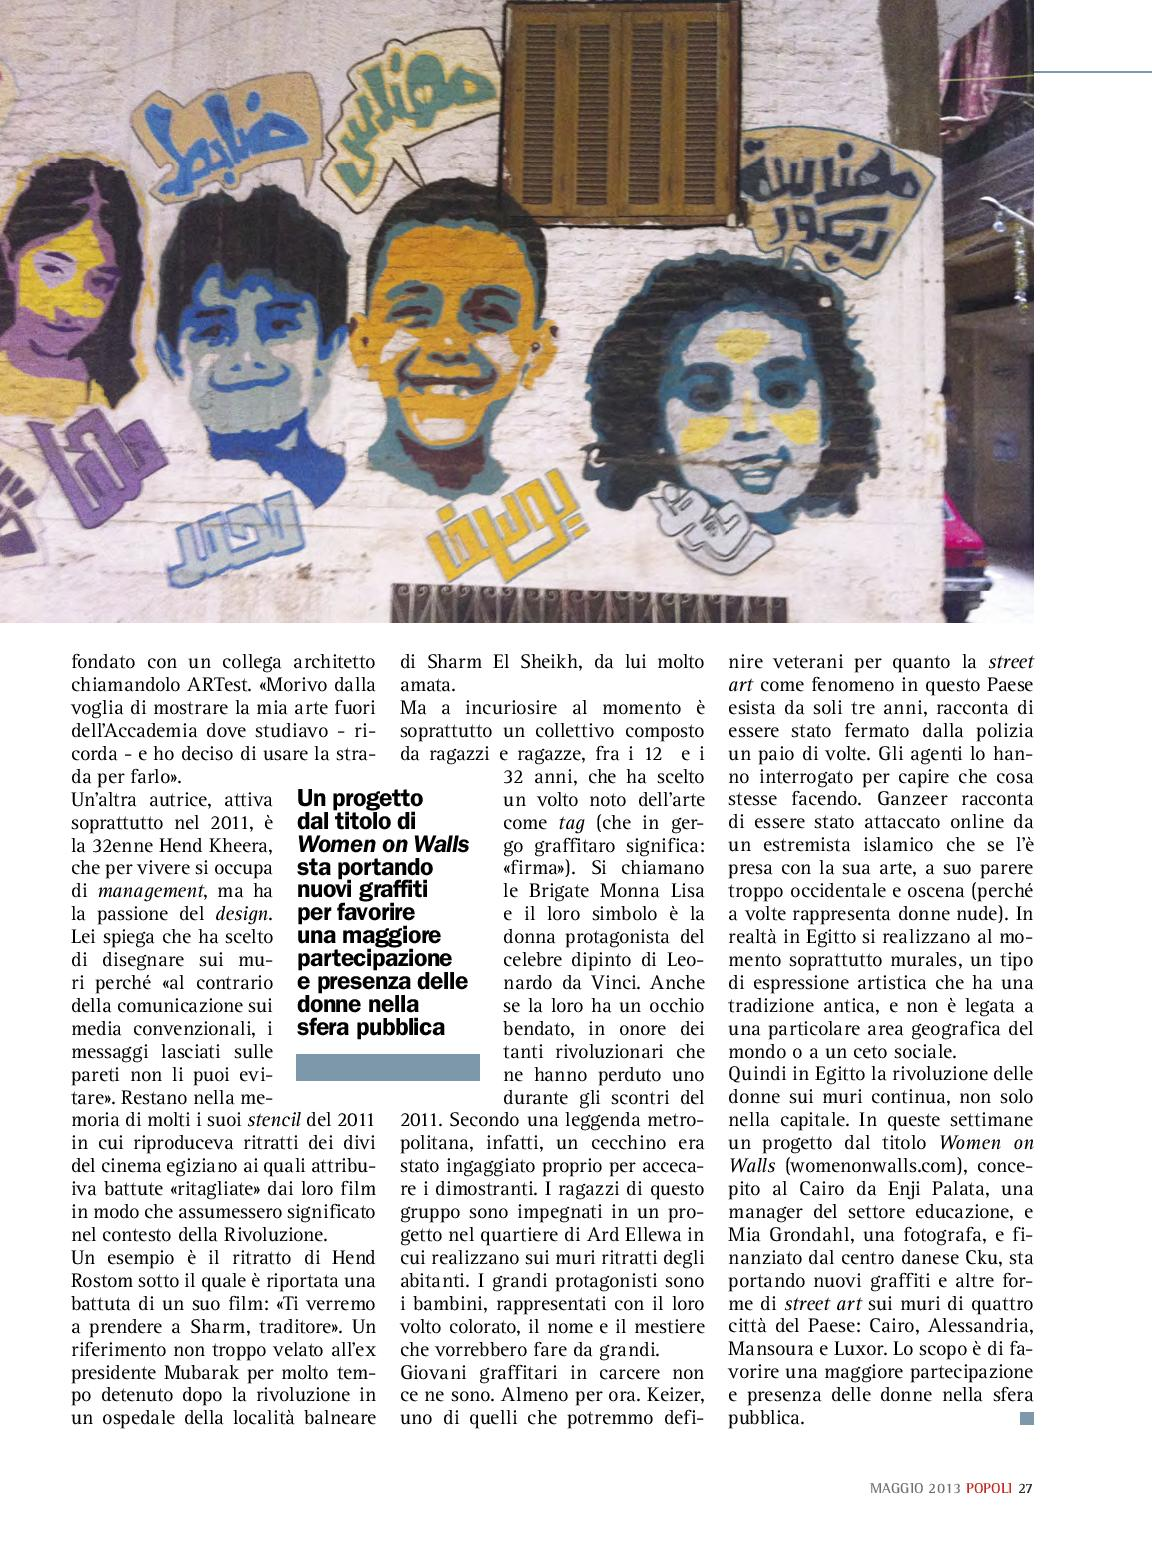 """L'emancipazione al muro"", my new story about graffiti in Cairo (on Popoli magazine)"